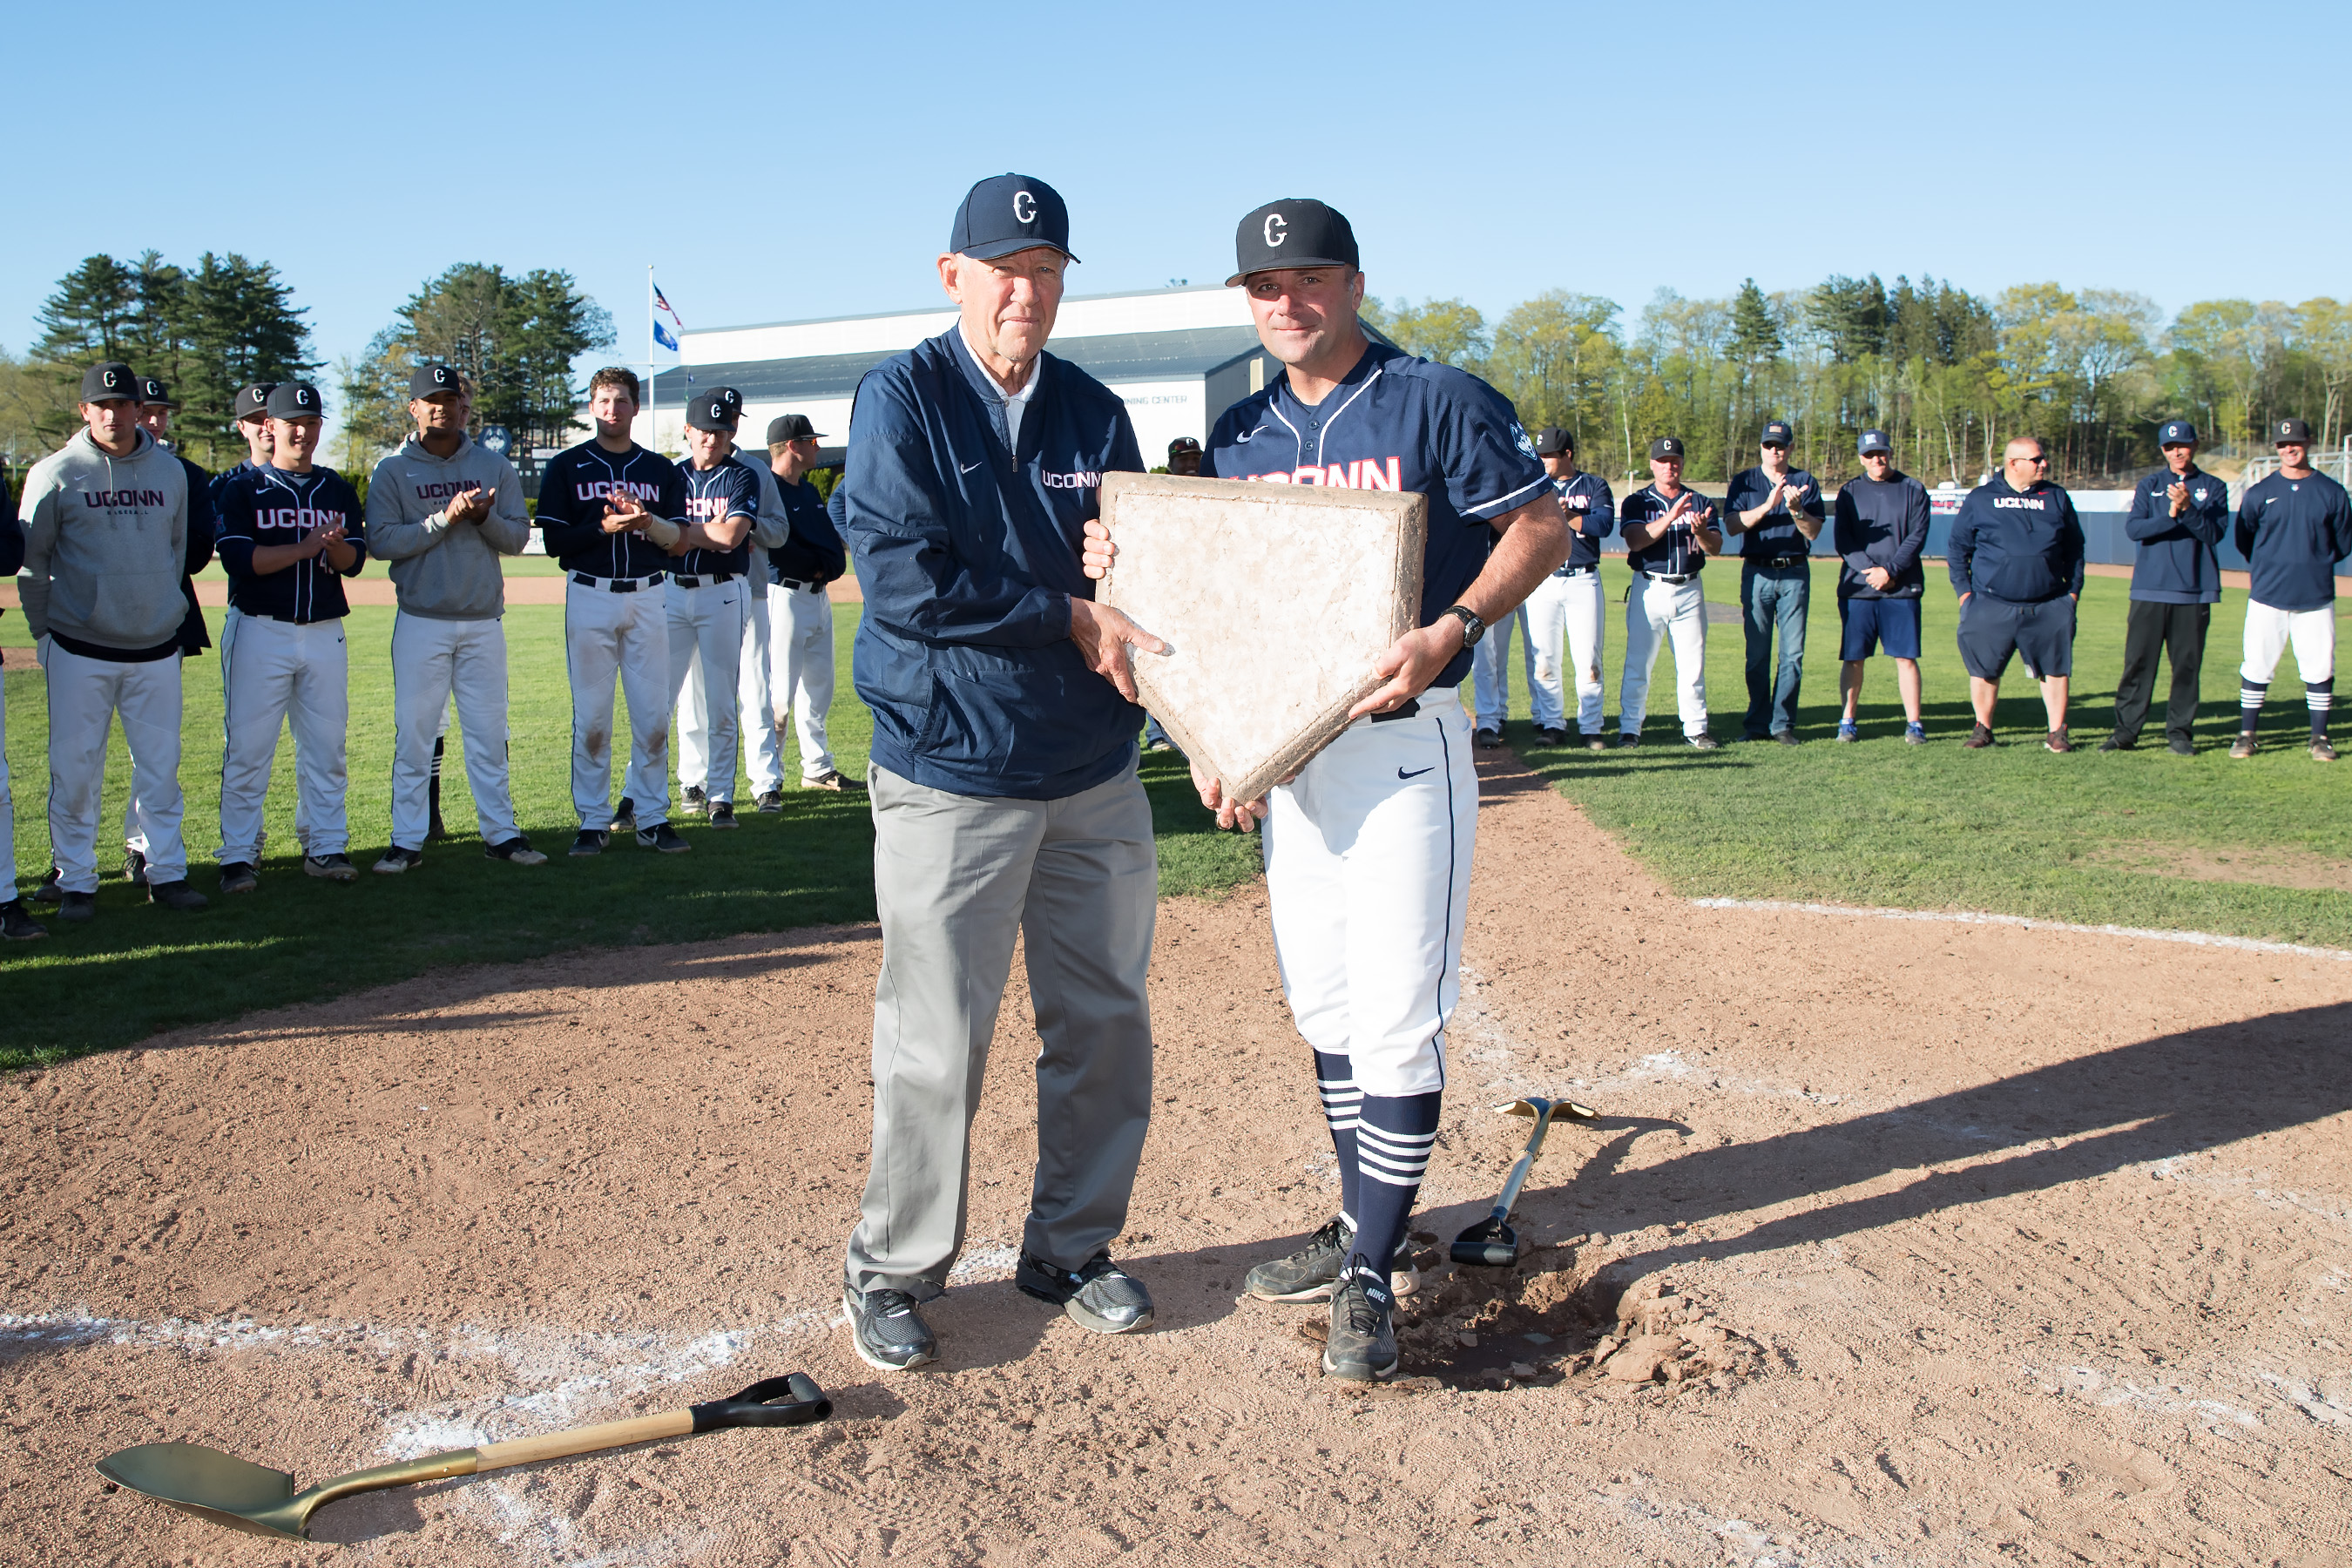 Jim Penders, right, accepts the home plate from Andy Baylock. (Stephen Slade/UConn Today)